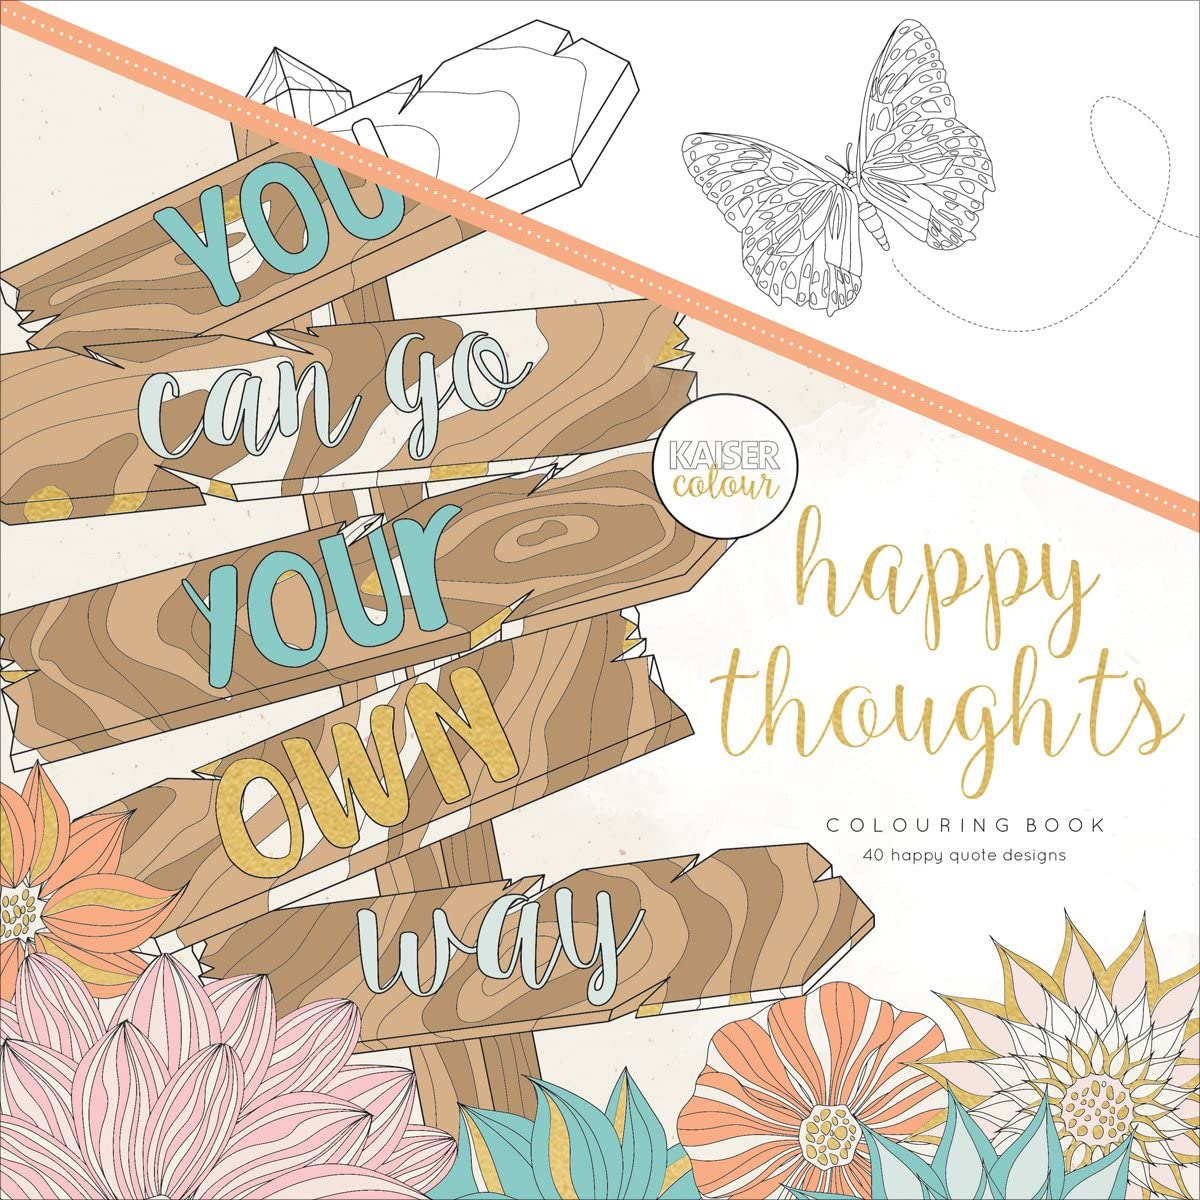 1925405621 Kaisercraft Happy Thoughts Coloring Book 81PHL6nIW8L